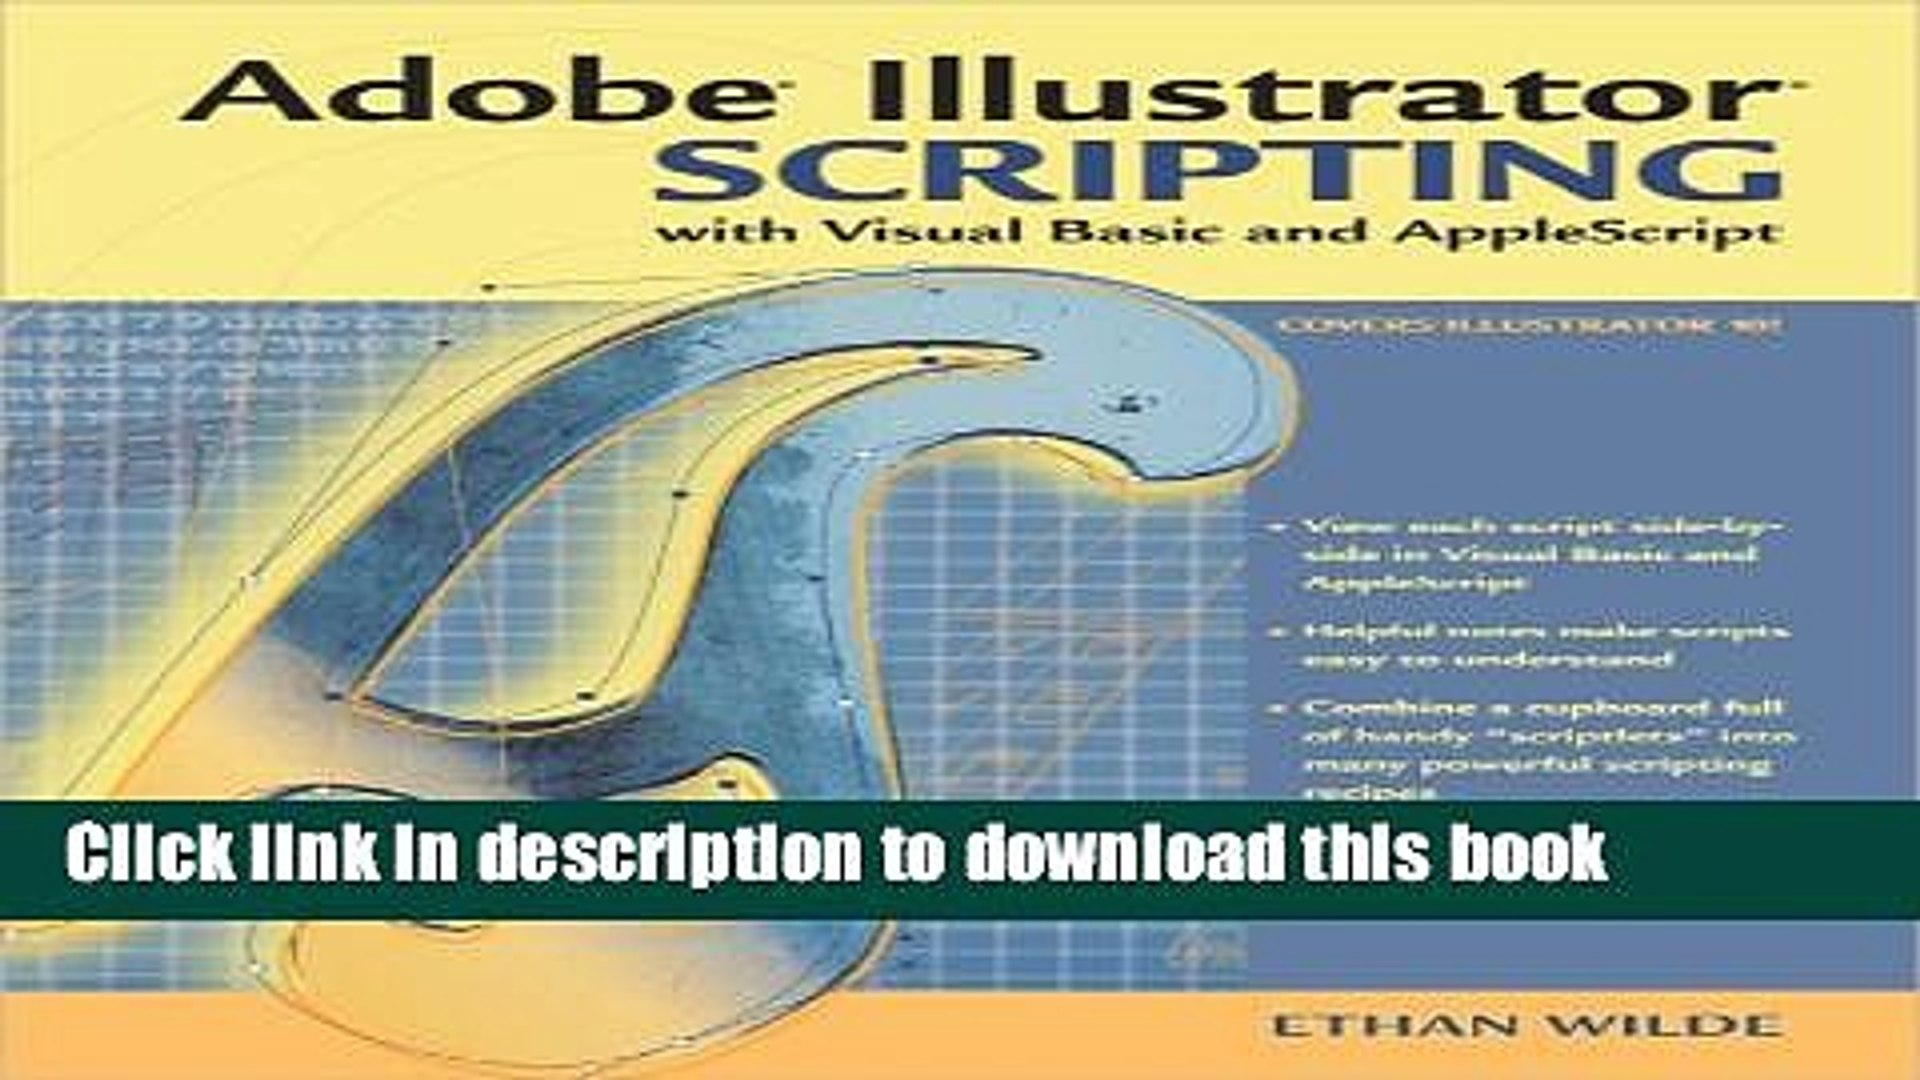 Read Book Adobe Illustrator Scripting with Visual Basic and AppleScript  ebook textbooks